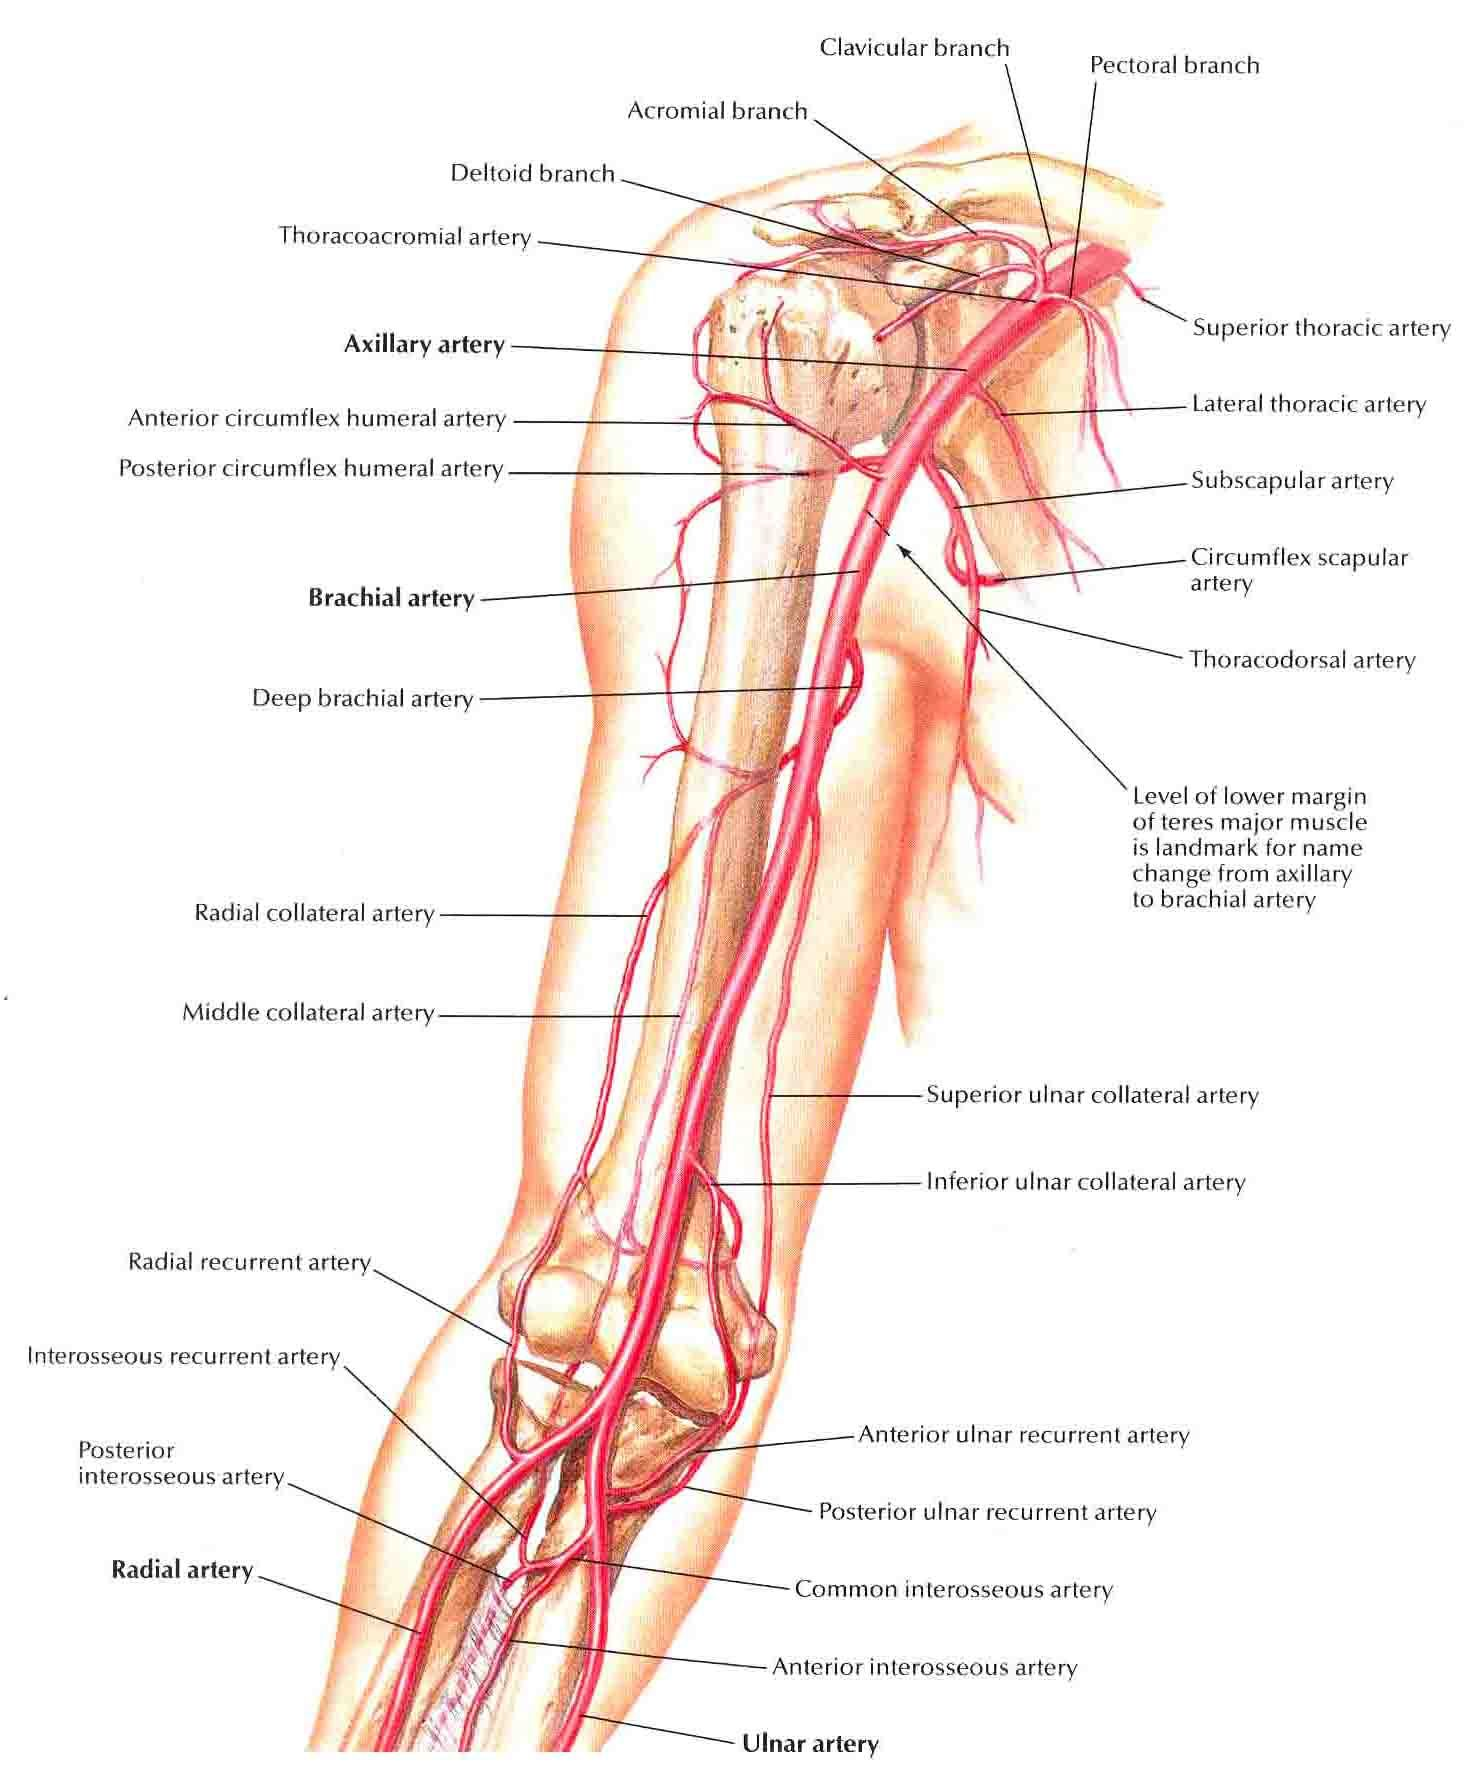 brachial artery and anastomoses around elbow | medicine and pa school, Human body